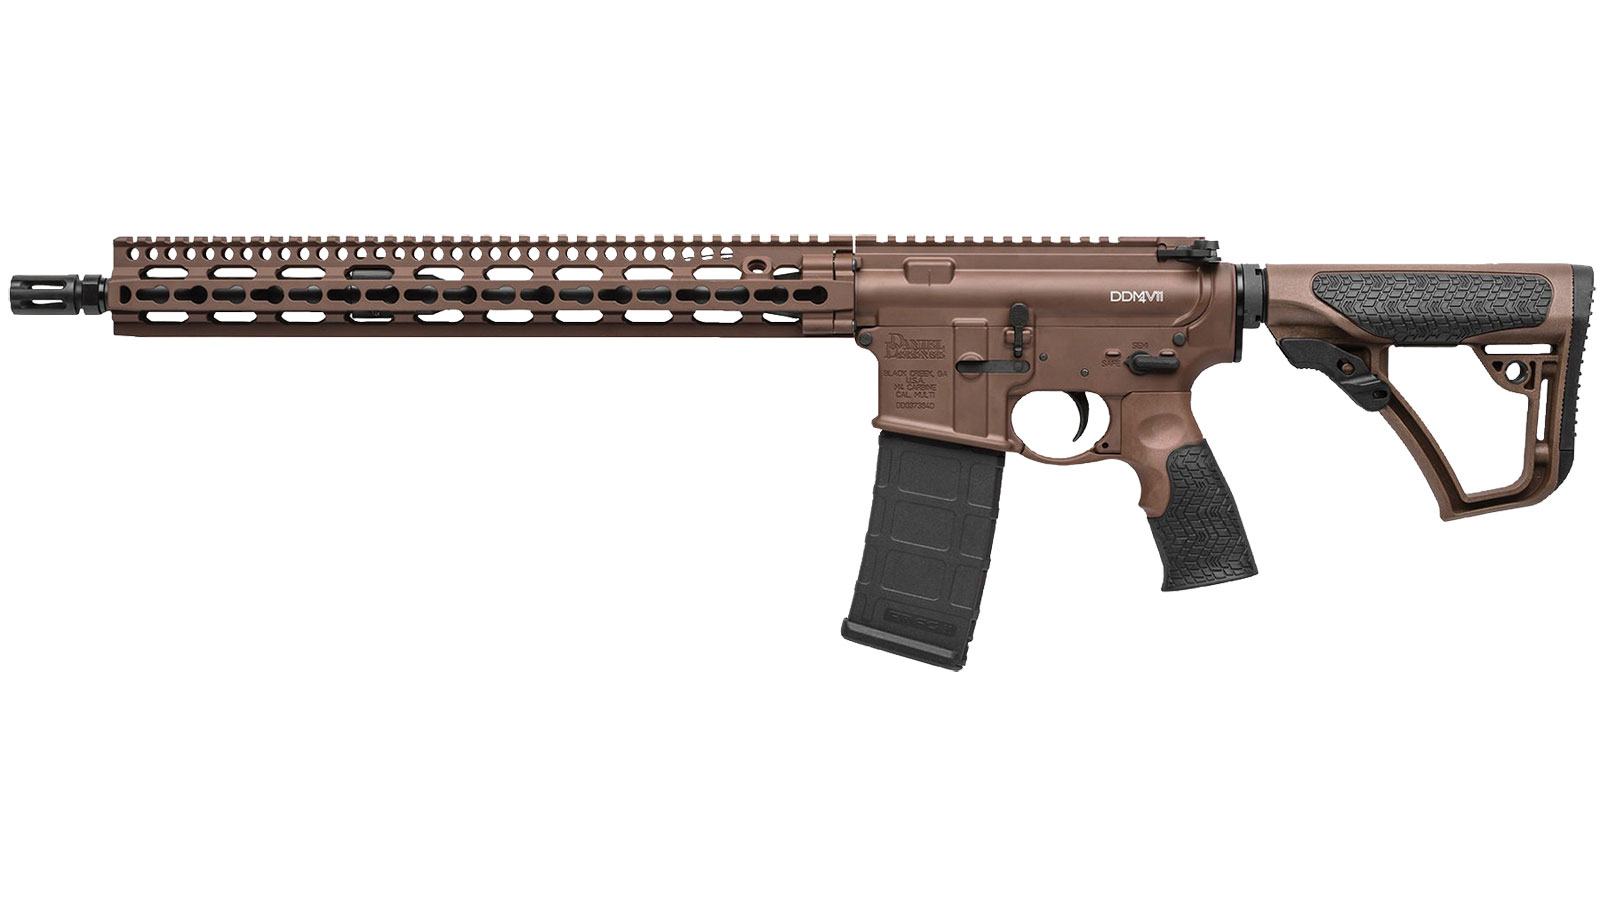 Daniel Defense 16191047 DDM4 V11 Semi-Automatic 300 AAC Blackout|Whisper (7.62x35mm) 16 30+1 6-Position Brown Stock Brown Cerakote|Black Phosphate in.